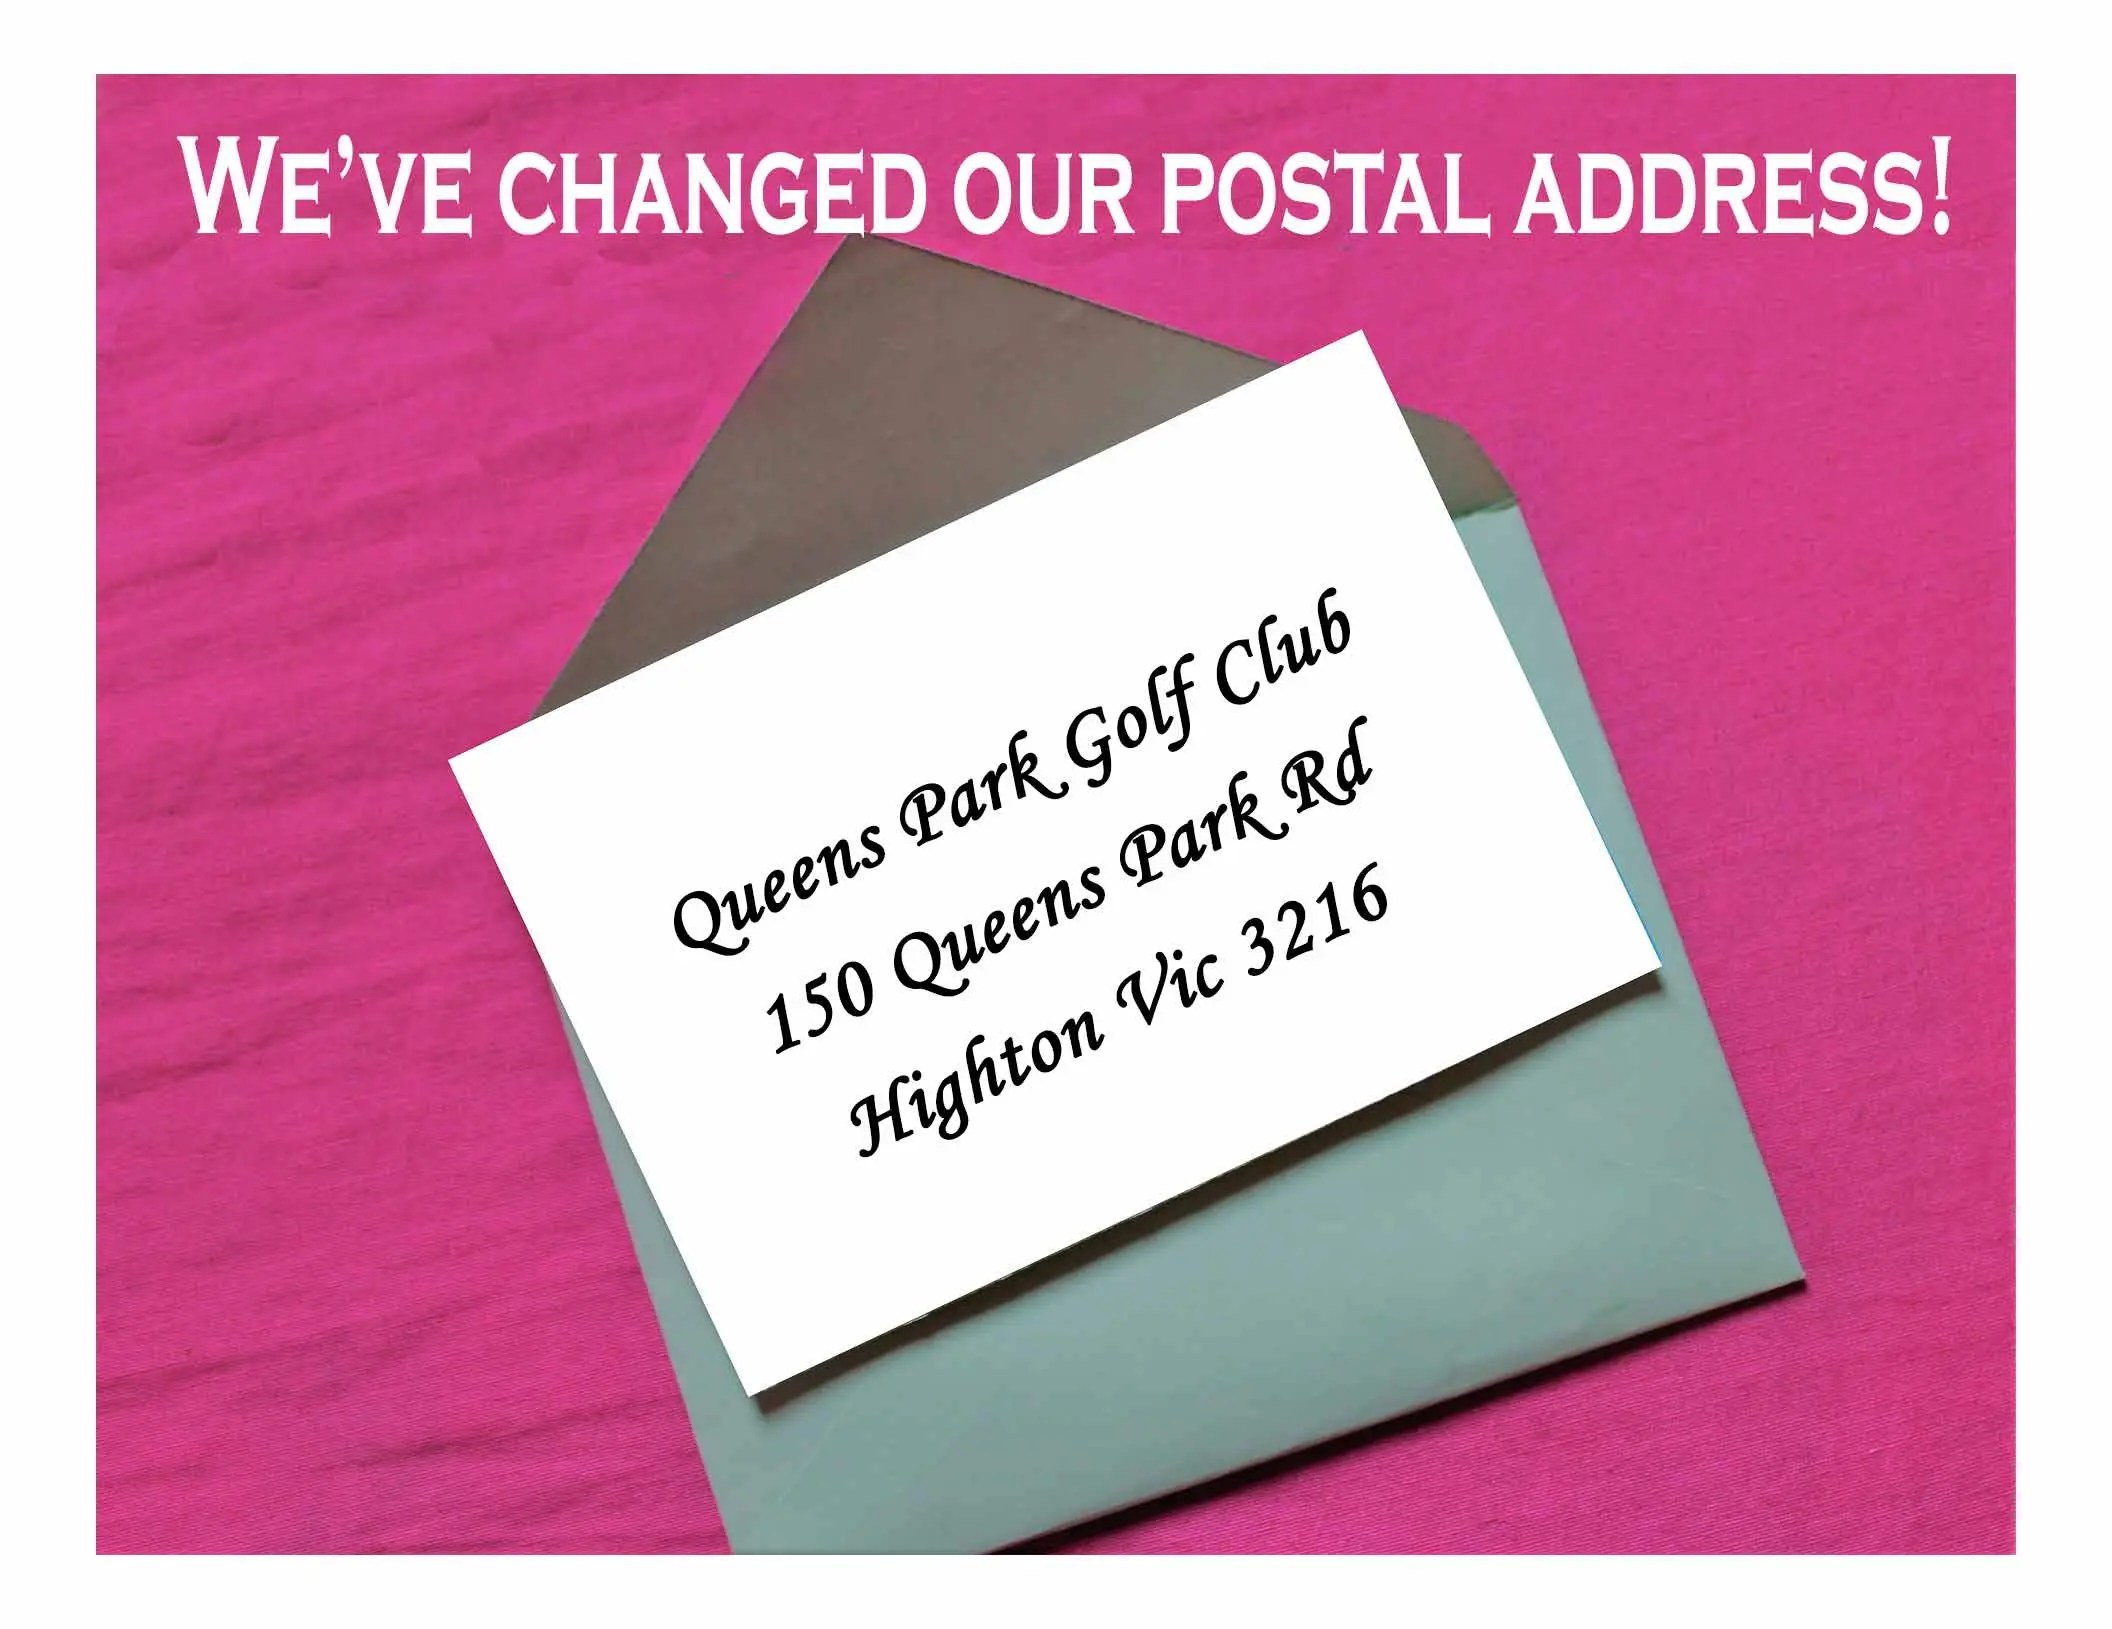 We've Changed Our Postal Address